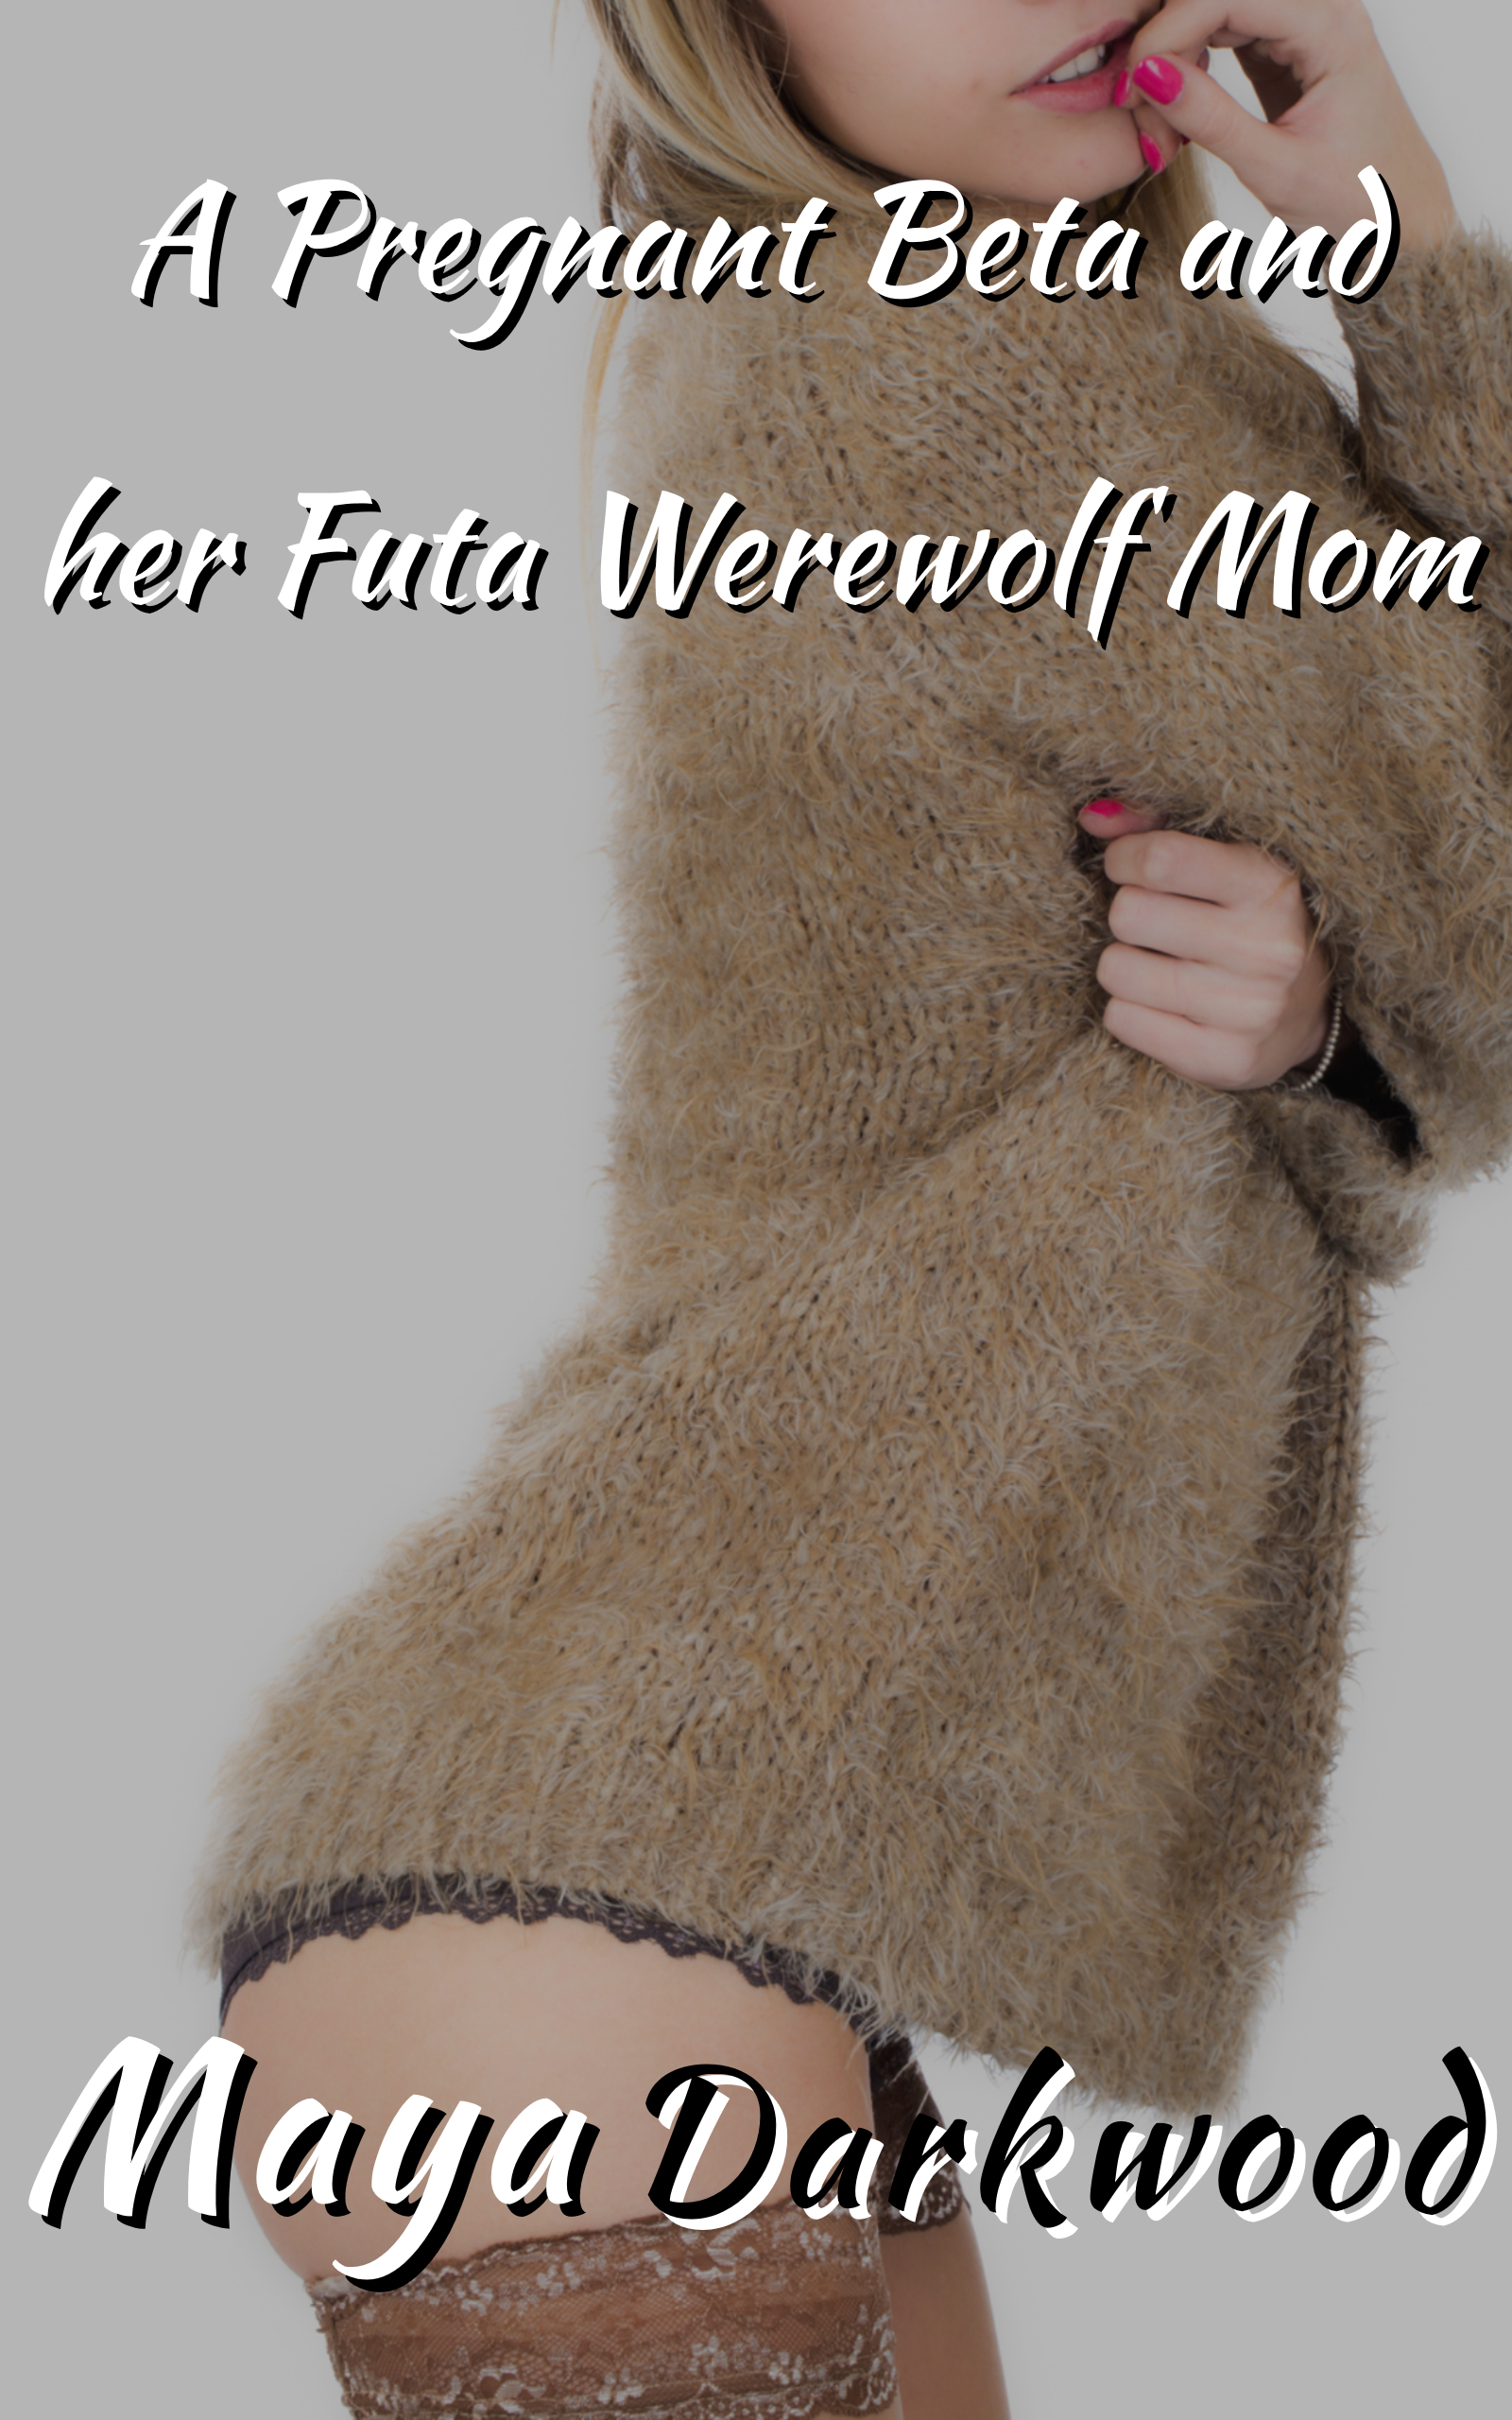 All Mother Love Futa a pregnant beta and her futa werewolf mom, an ebookmaya darkwood